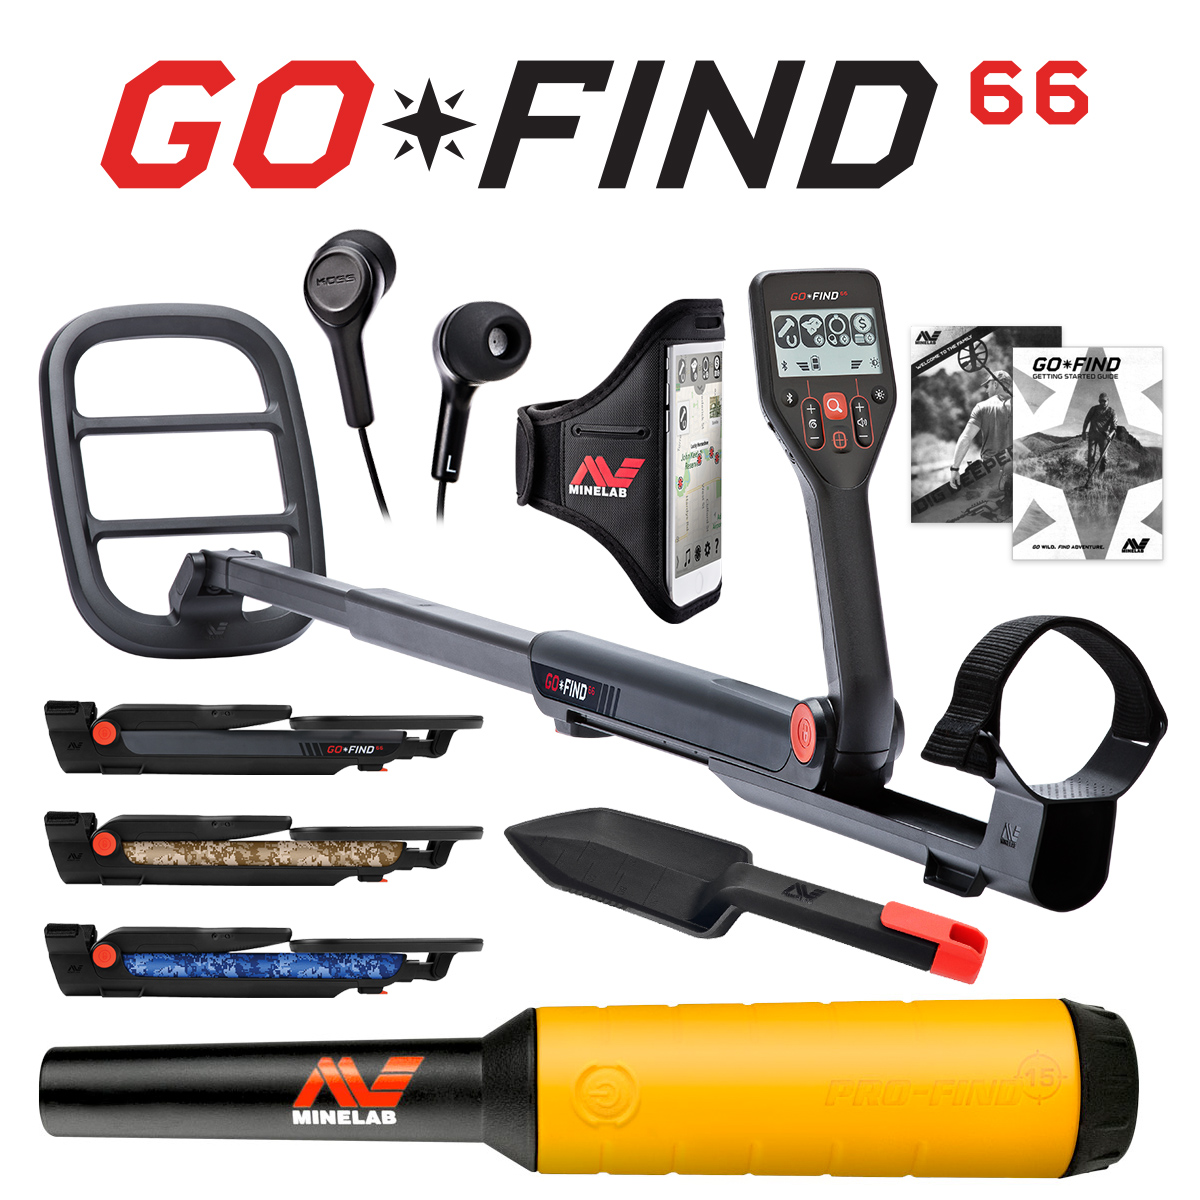 Minelab GO-FIND 66 Metal Detector with PRO-FIND 15 Pinpointer & Holster